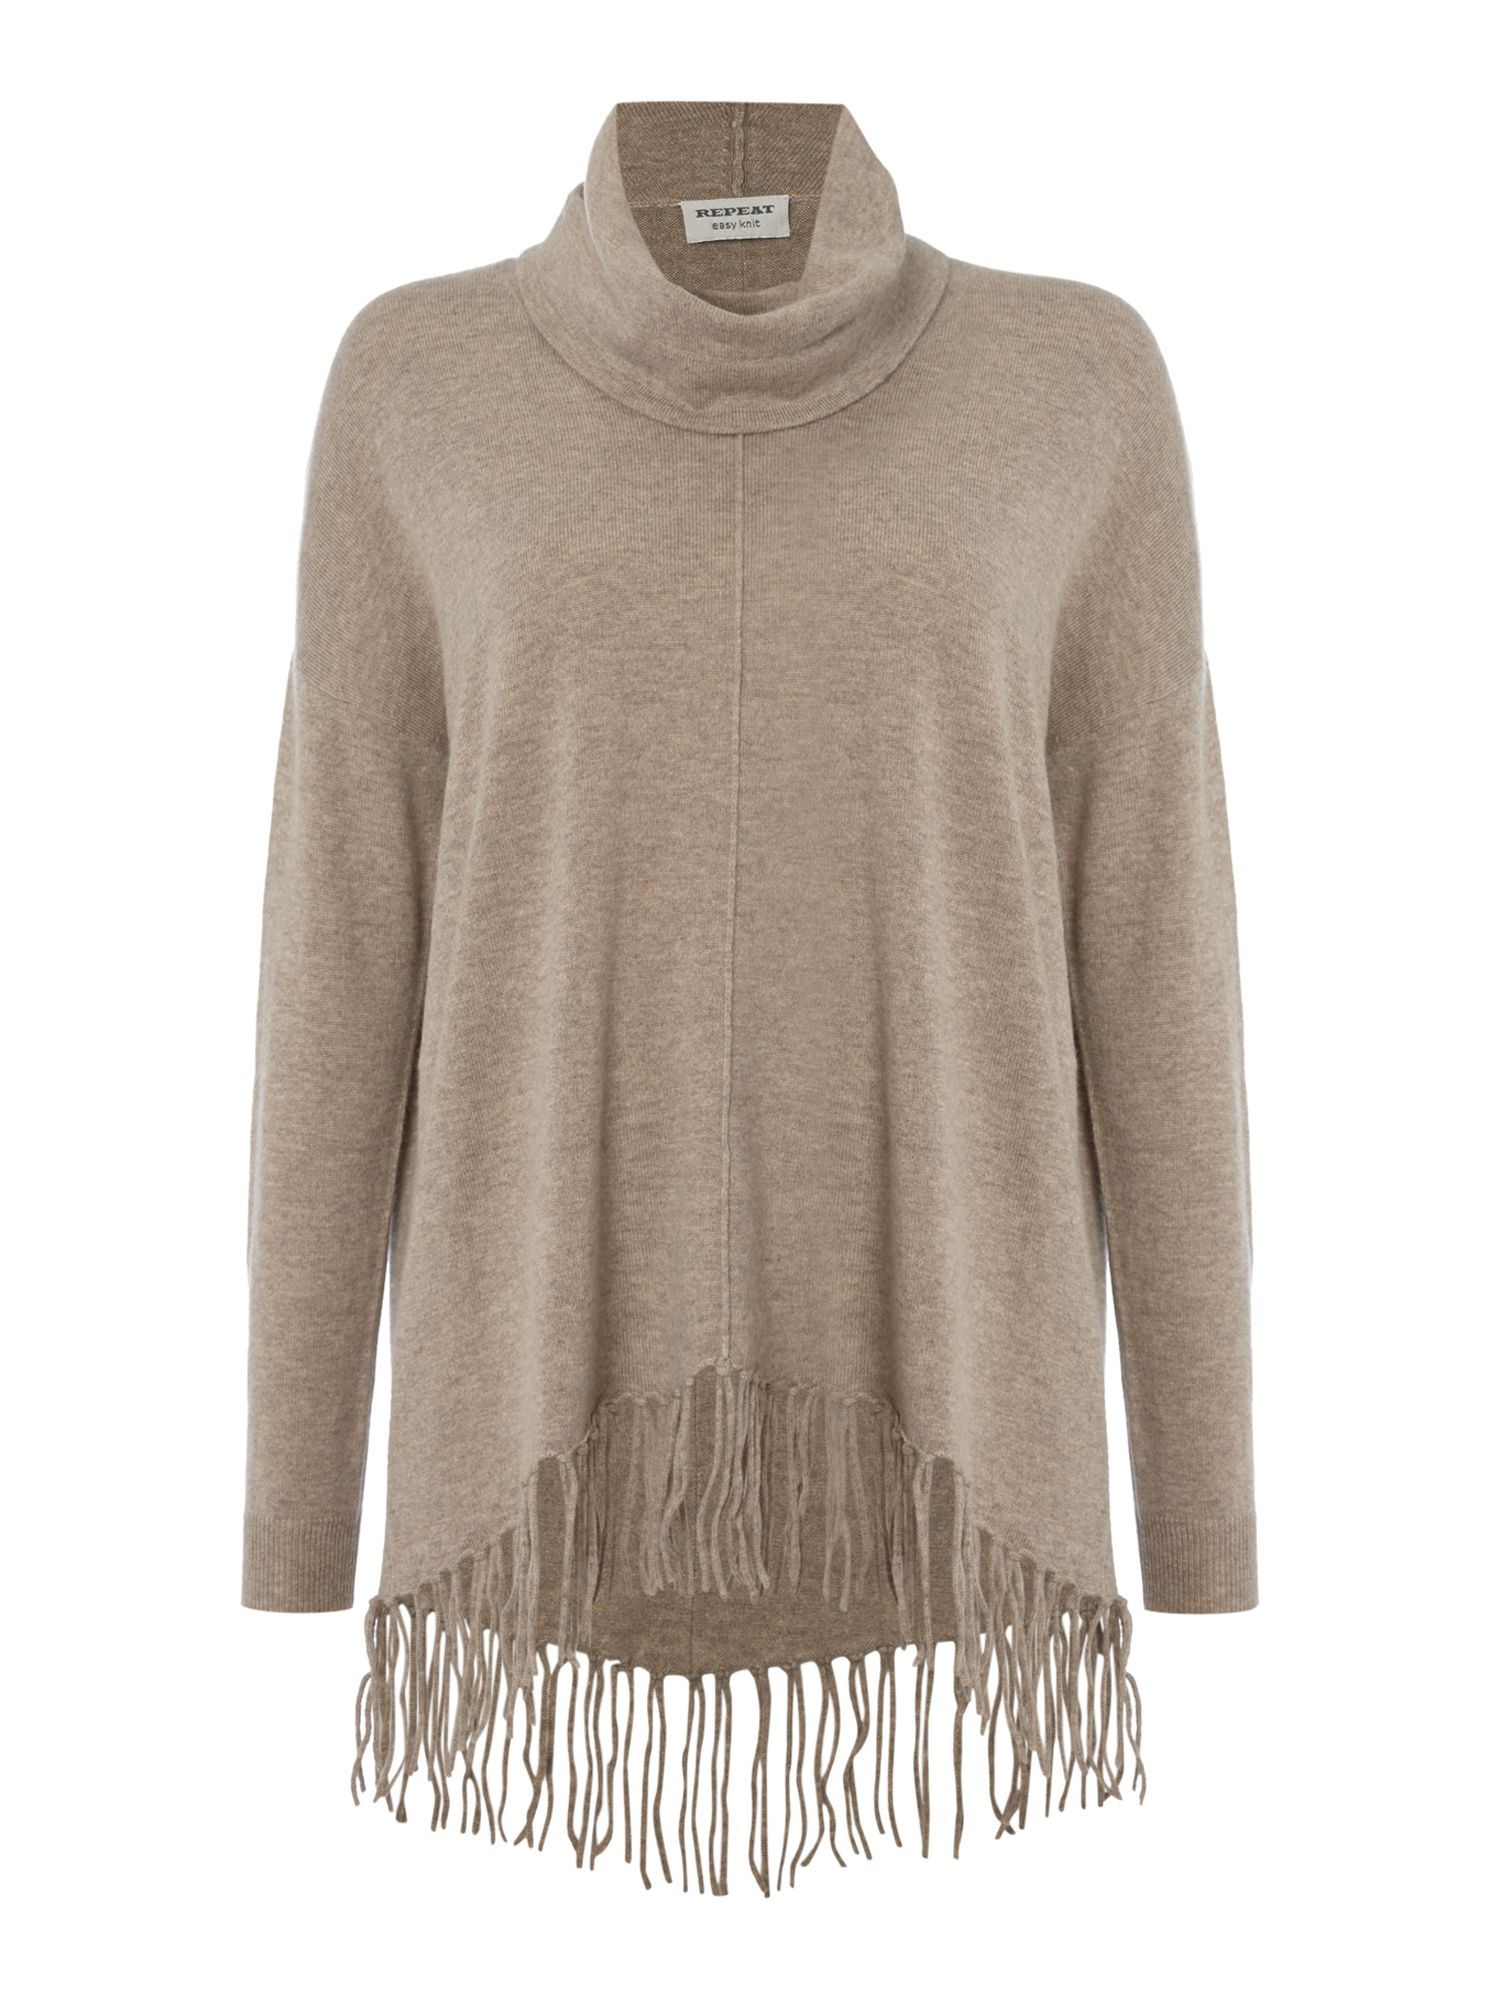 Repeat Cashmere Repeat Cashmere Roll neck fringed oversized jumper, Sand